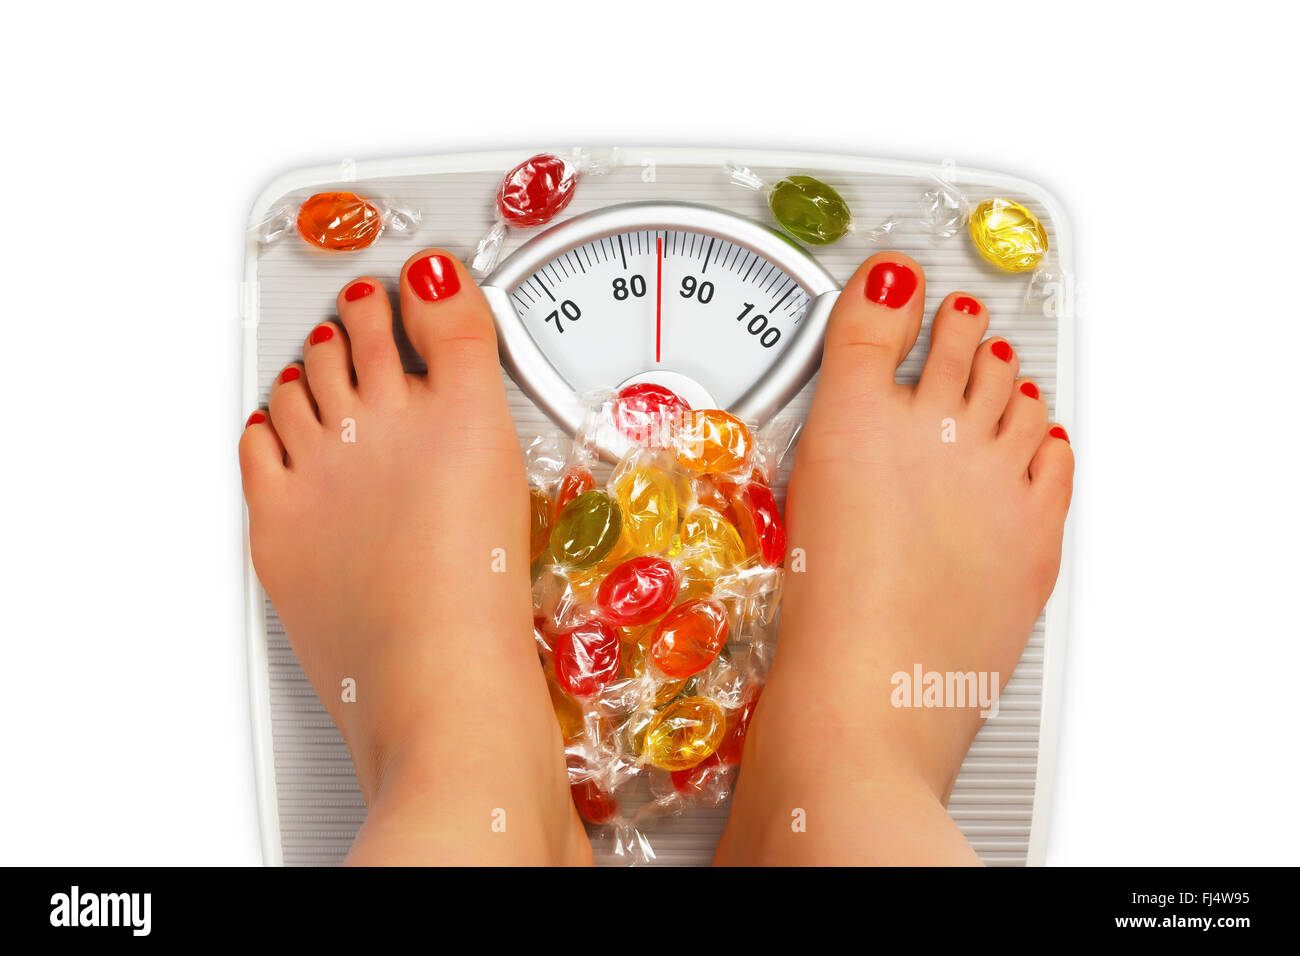 Photo of bathroom scale with candy - Stock Image